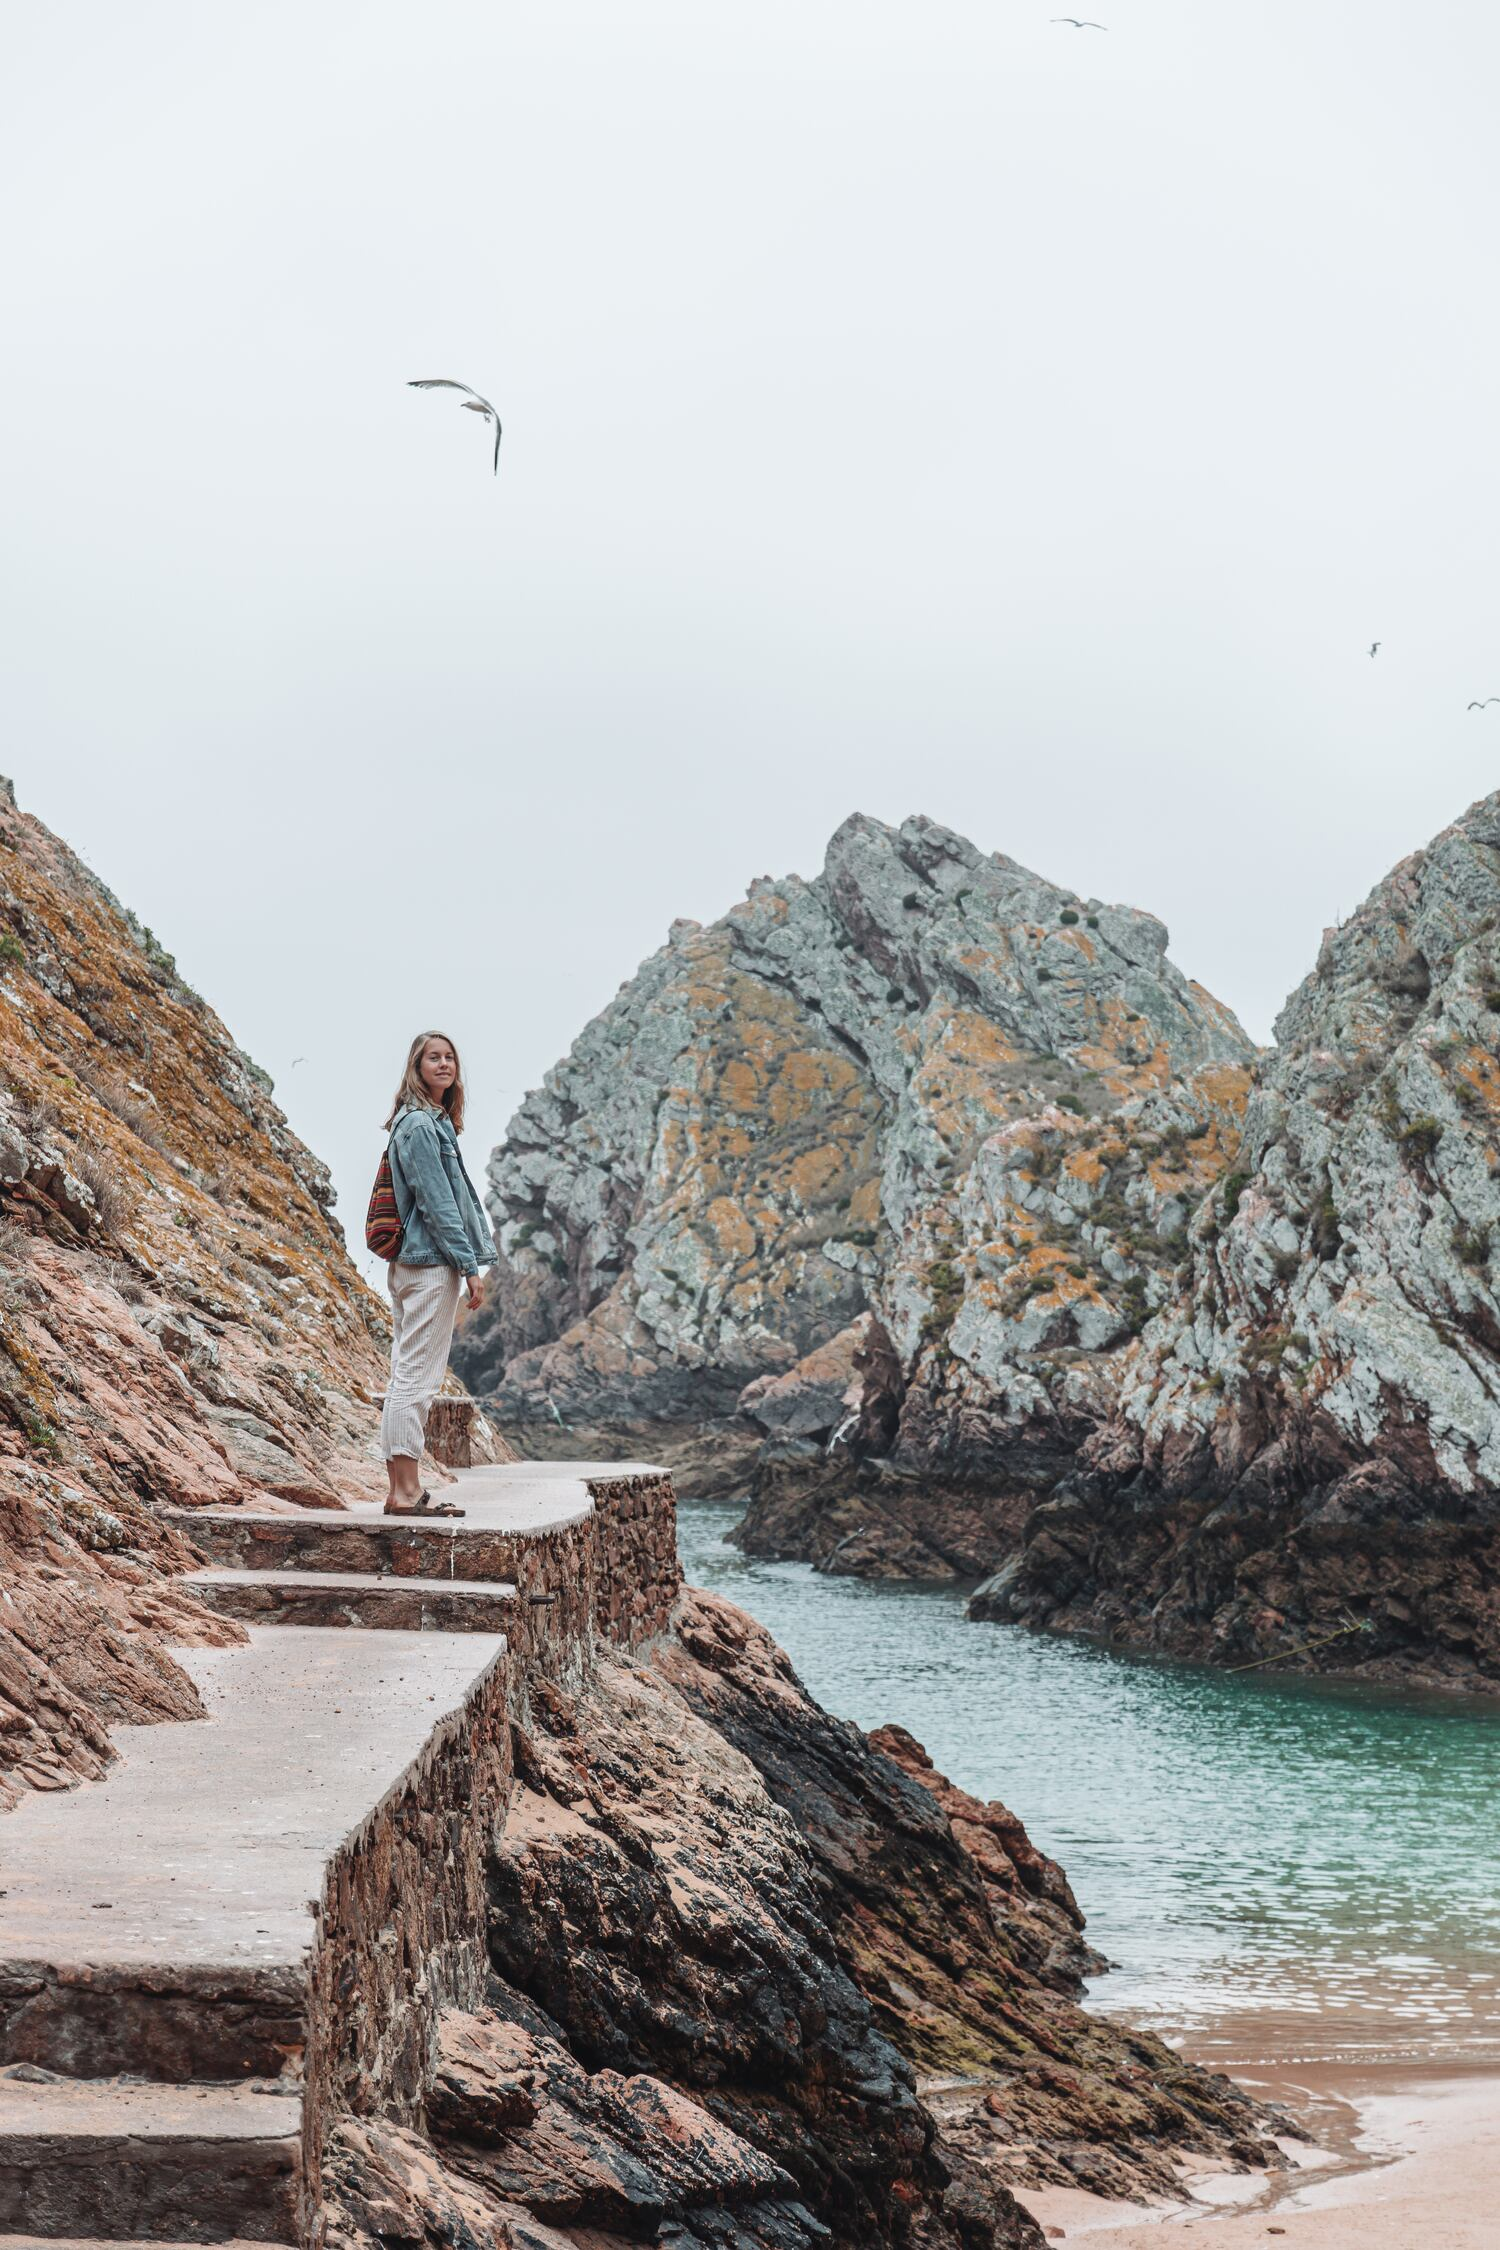 The Berlenga Islands are a must visit location when venturing on a Portugal road trip